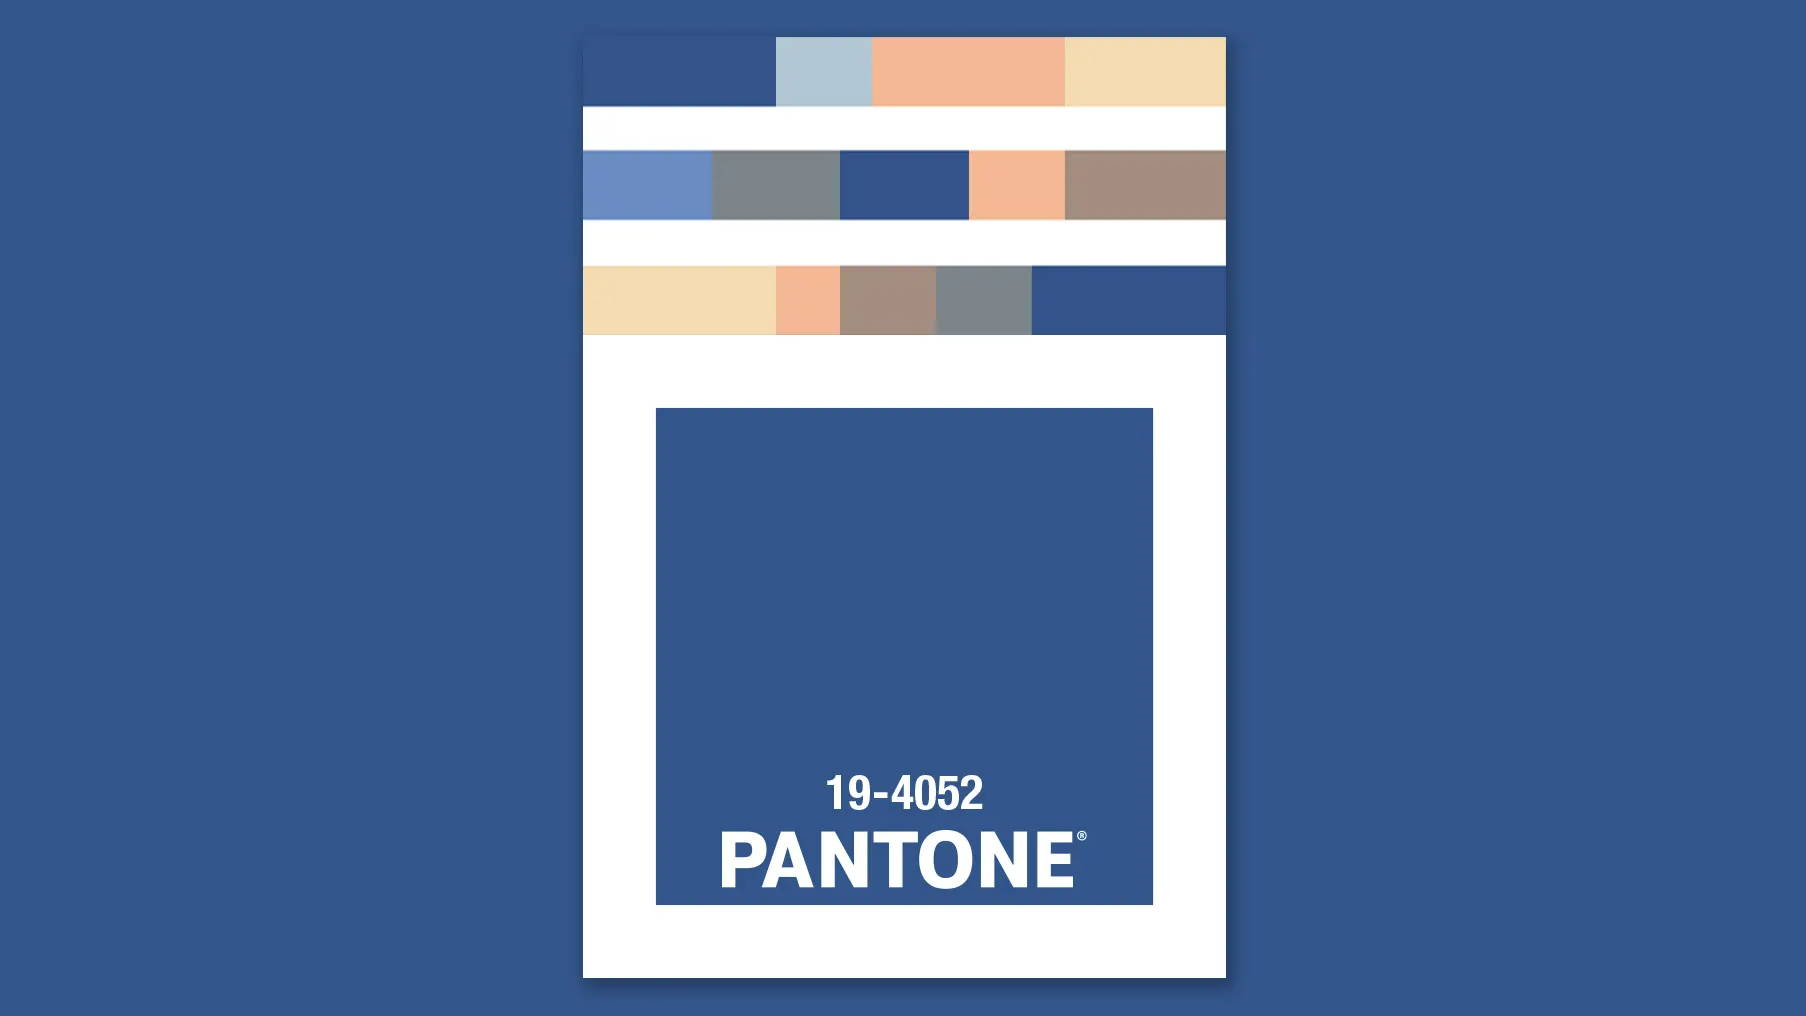 Design Your Room with the Pantone Color of the Year!